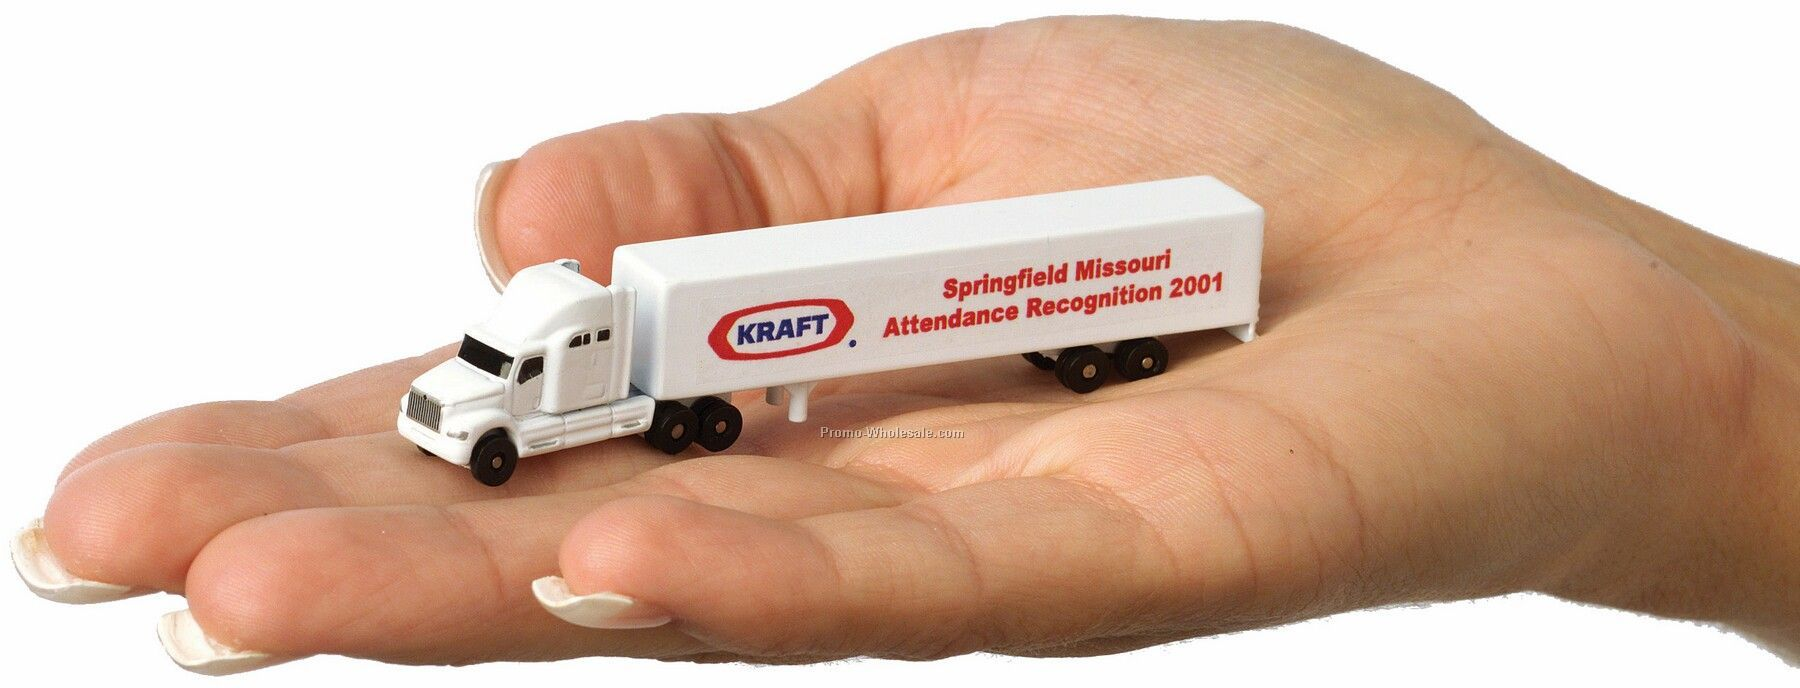 "3-1/2"" Die Cast Conventional Sleeper Truck With Trailer"